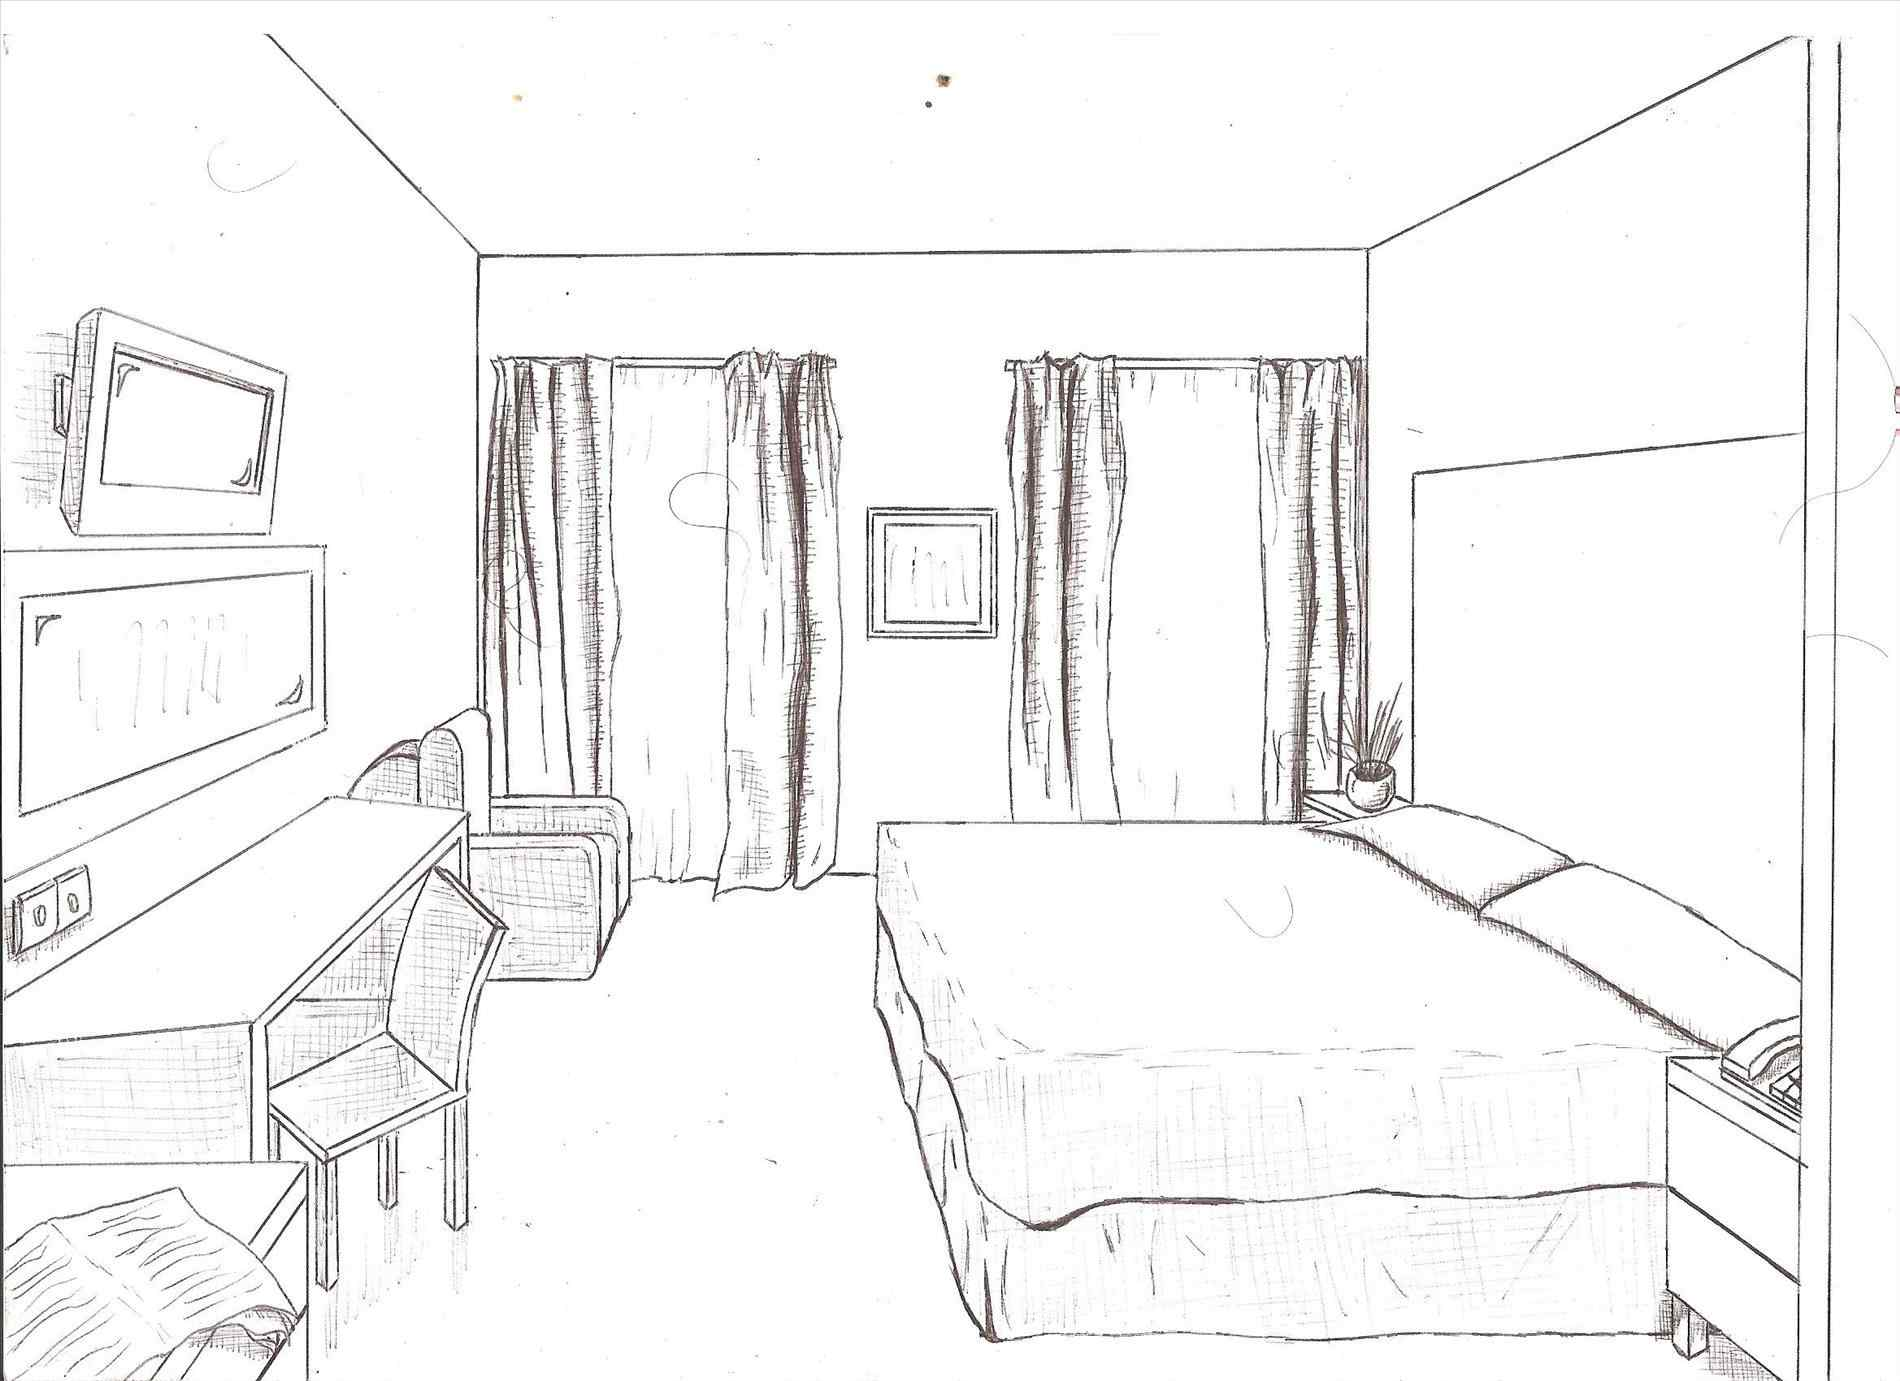 Room Line Drawing at GetDrawings.com | Free for personal use Room ...